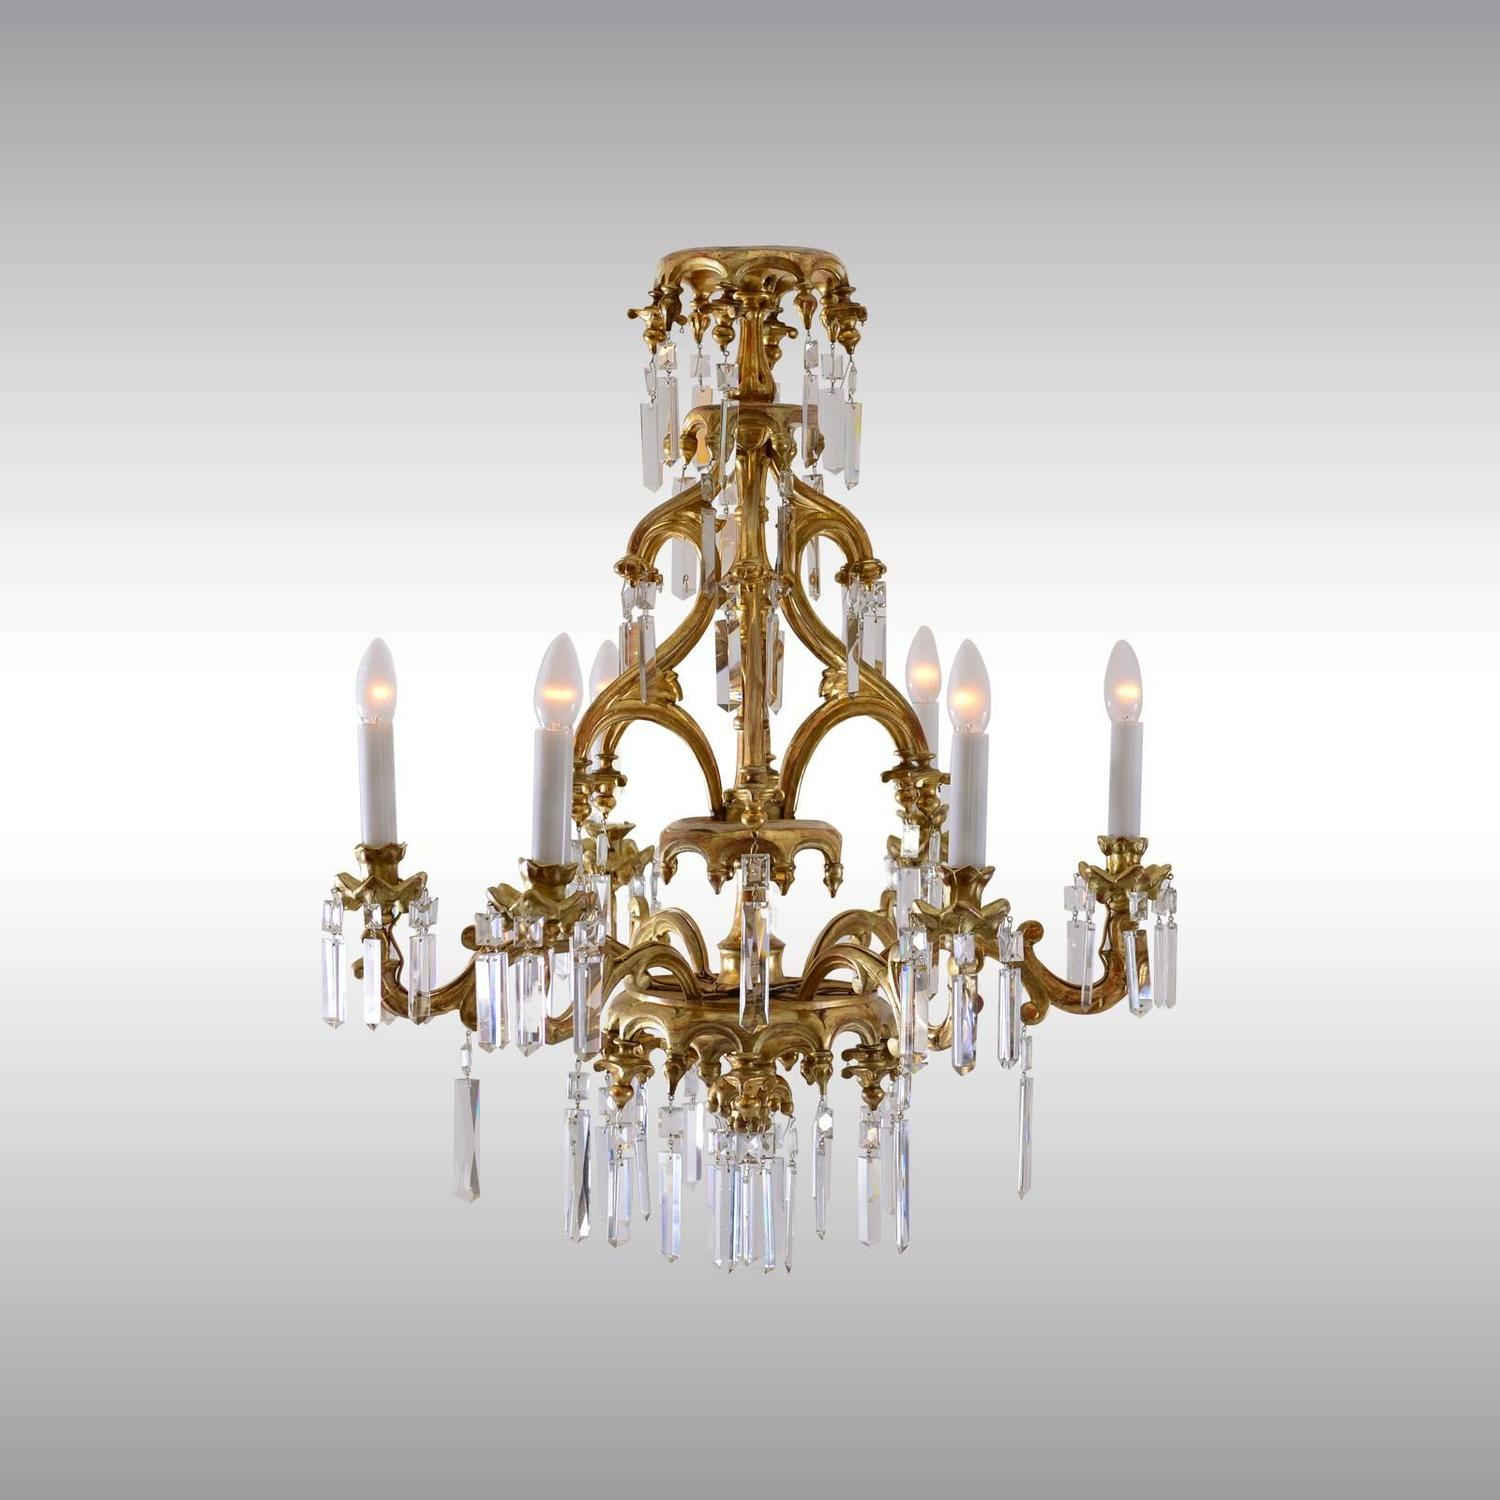 historistic chandelier in gothic style for sale at 1stdibs